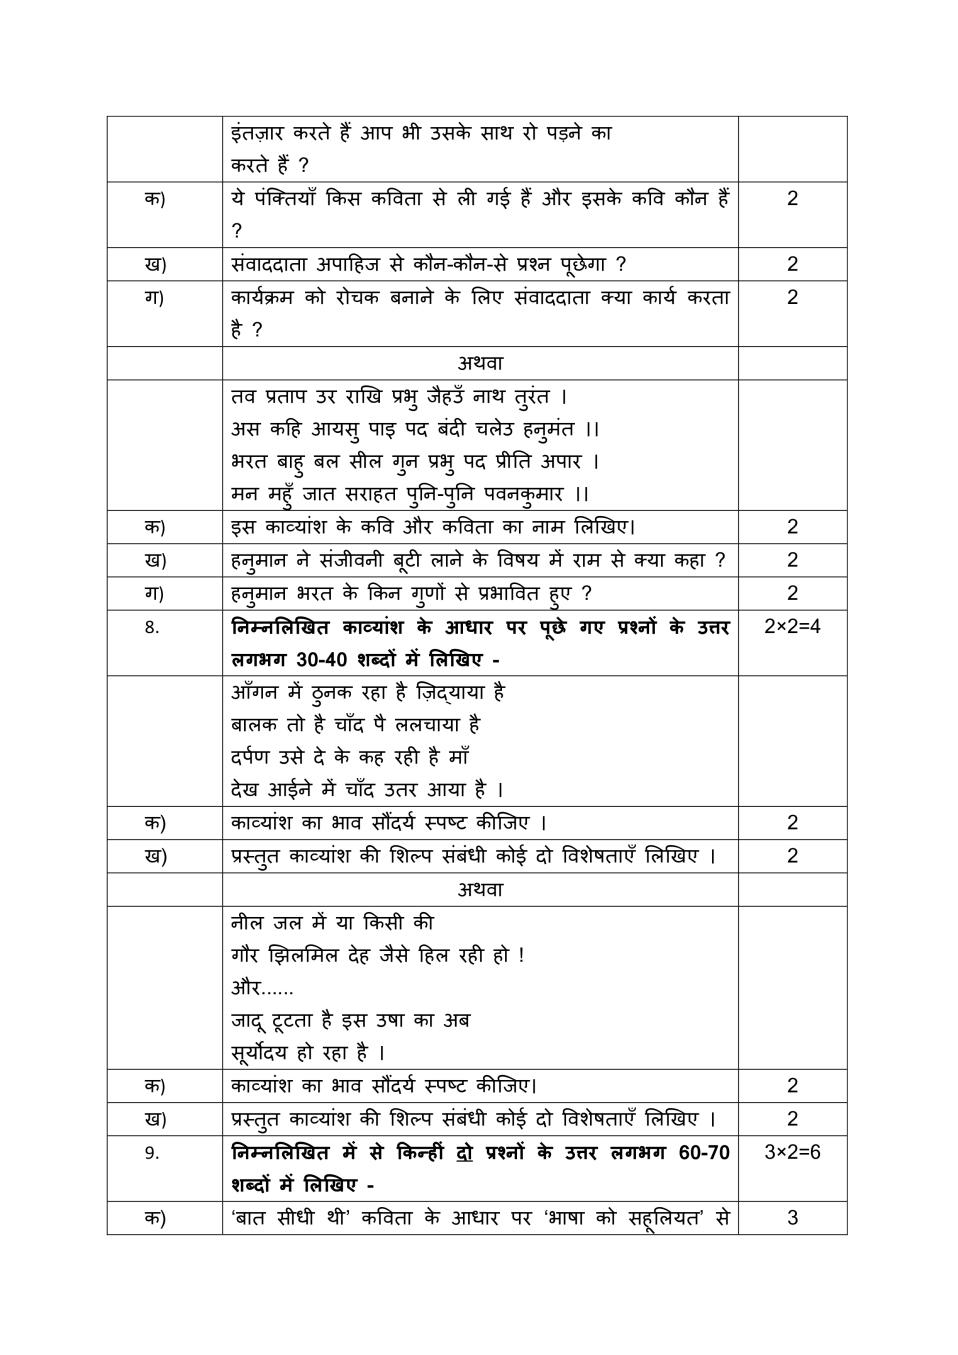 Cbse Sample Papers 2020 For Class 12 Hindi Core Aglasem Schools Sample Paper Sample Question Paper Marking Scheme [ 1355 x 958 Pixel ]